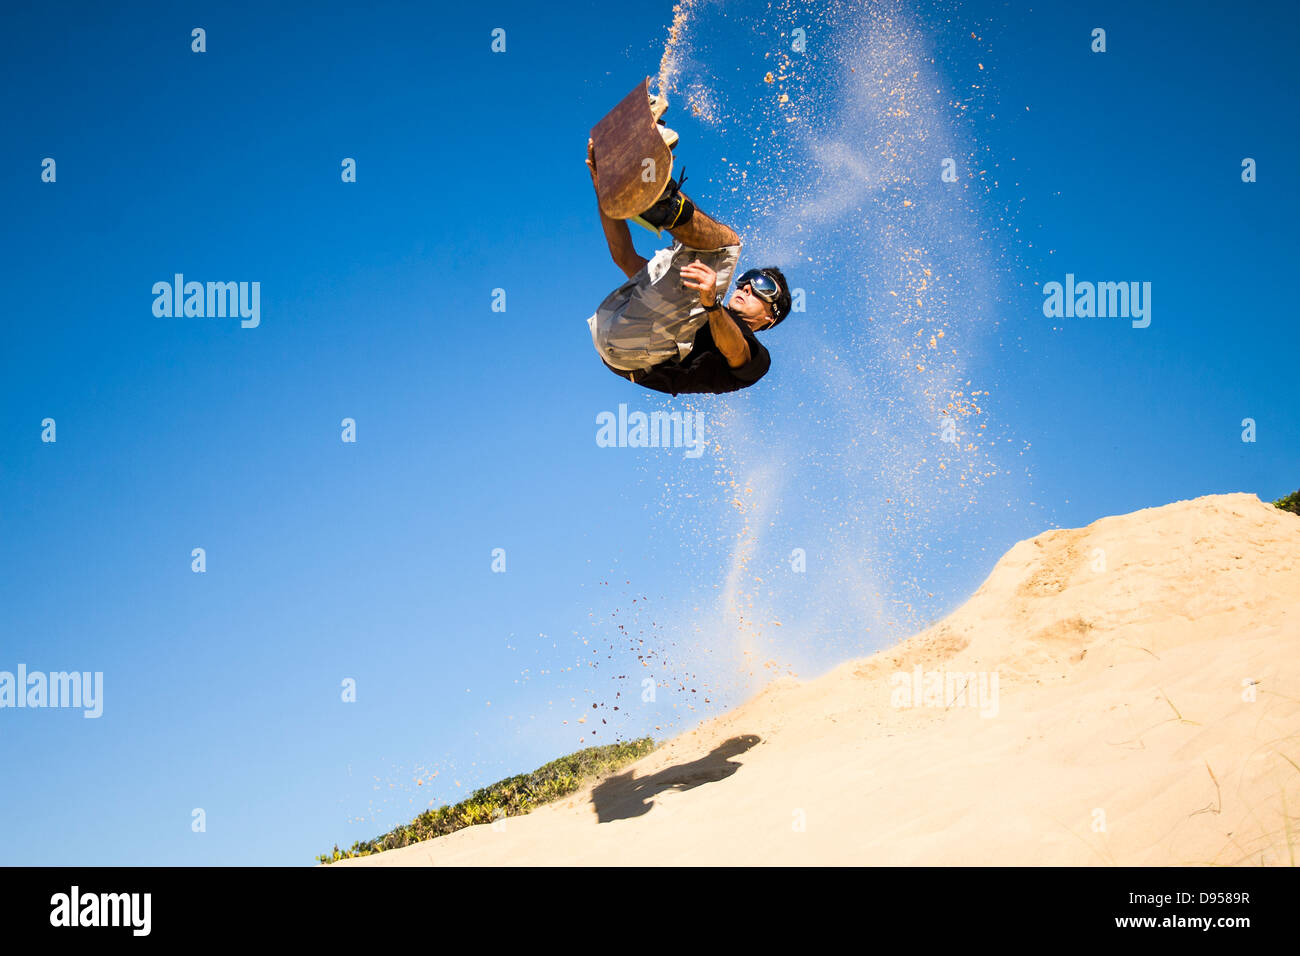 Sandboarder doing a front flip against cloudless blue sky and holding his board on the dunes of Praia Grande. - Stock Image